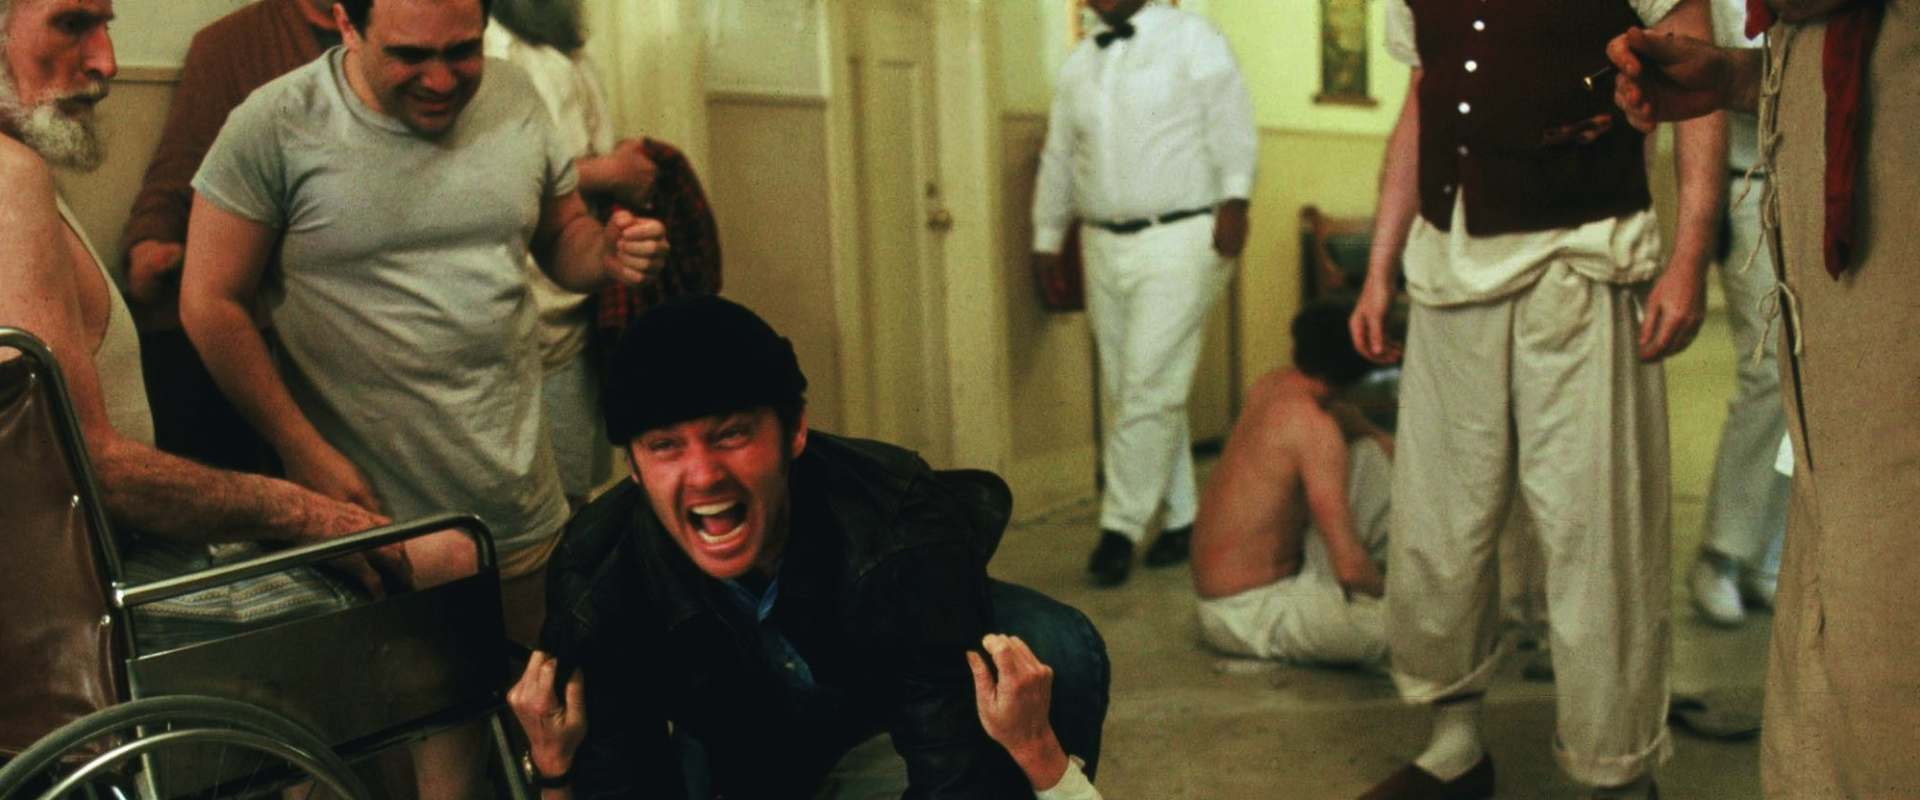 One Flew Over the Cuckoo's Nest background 2